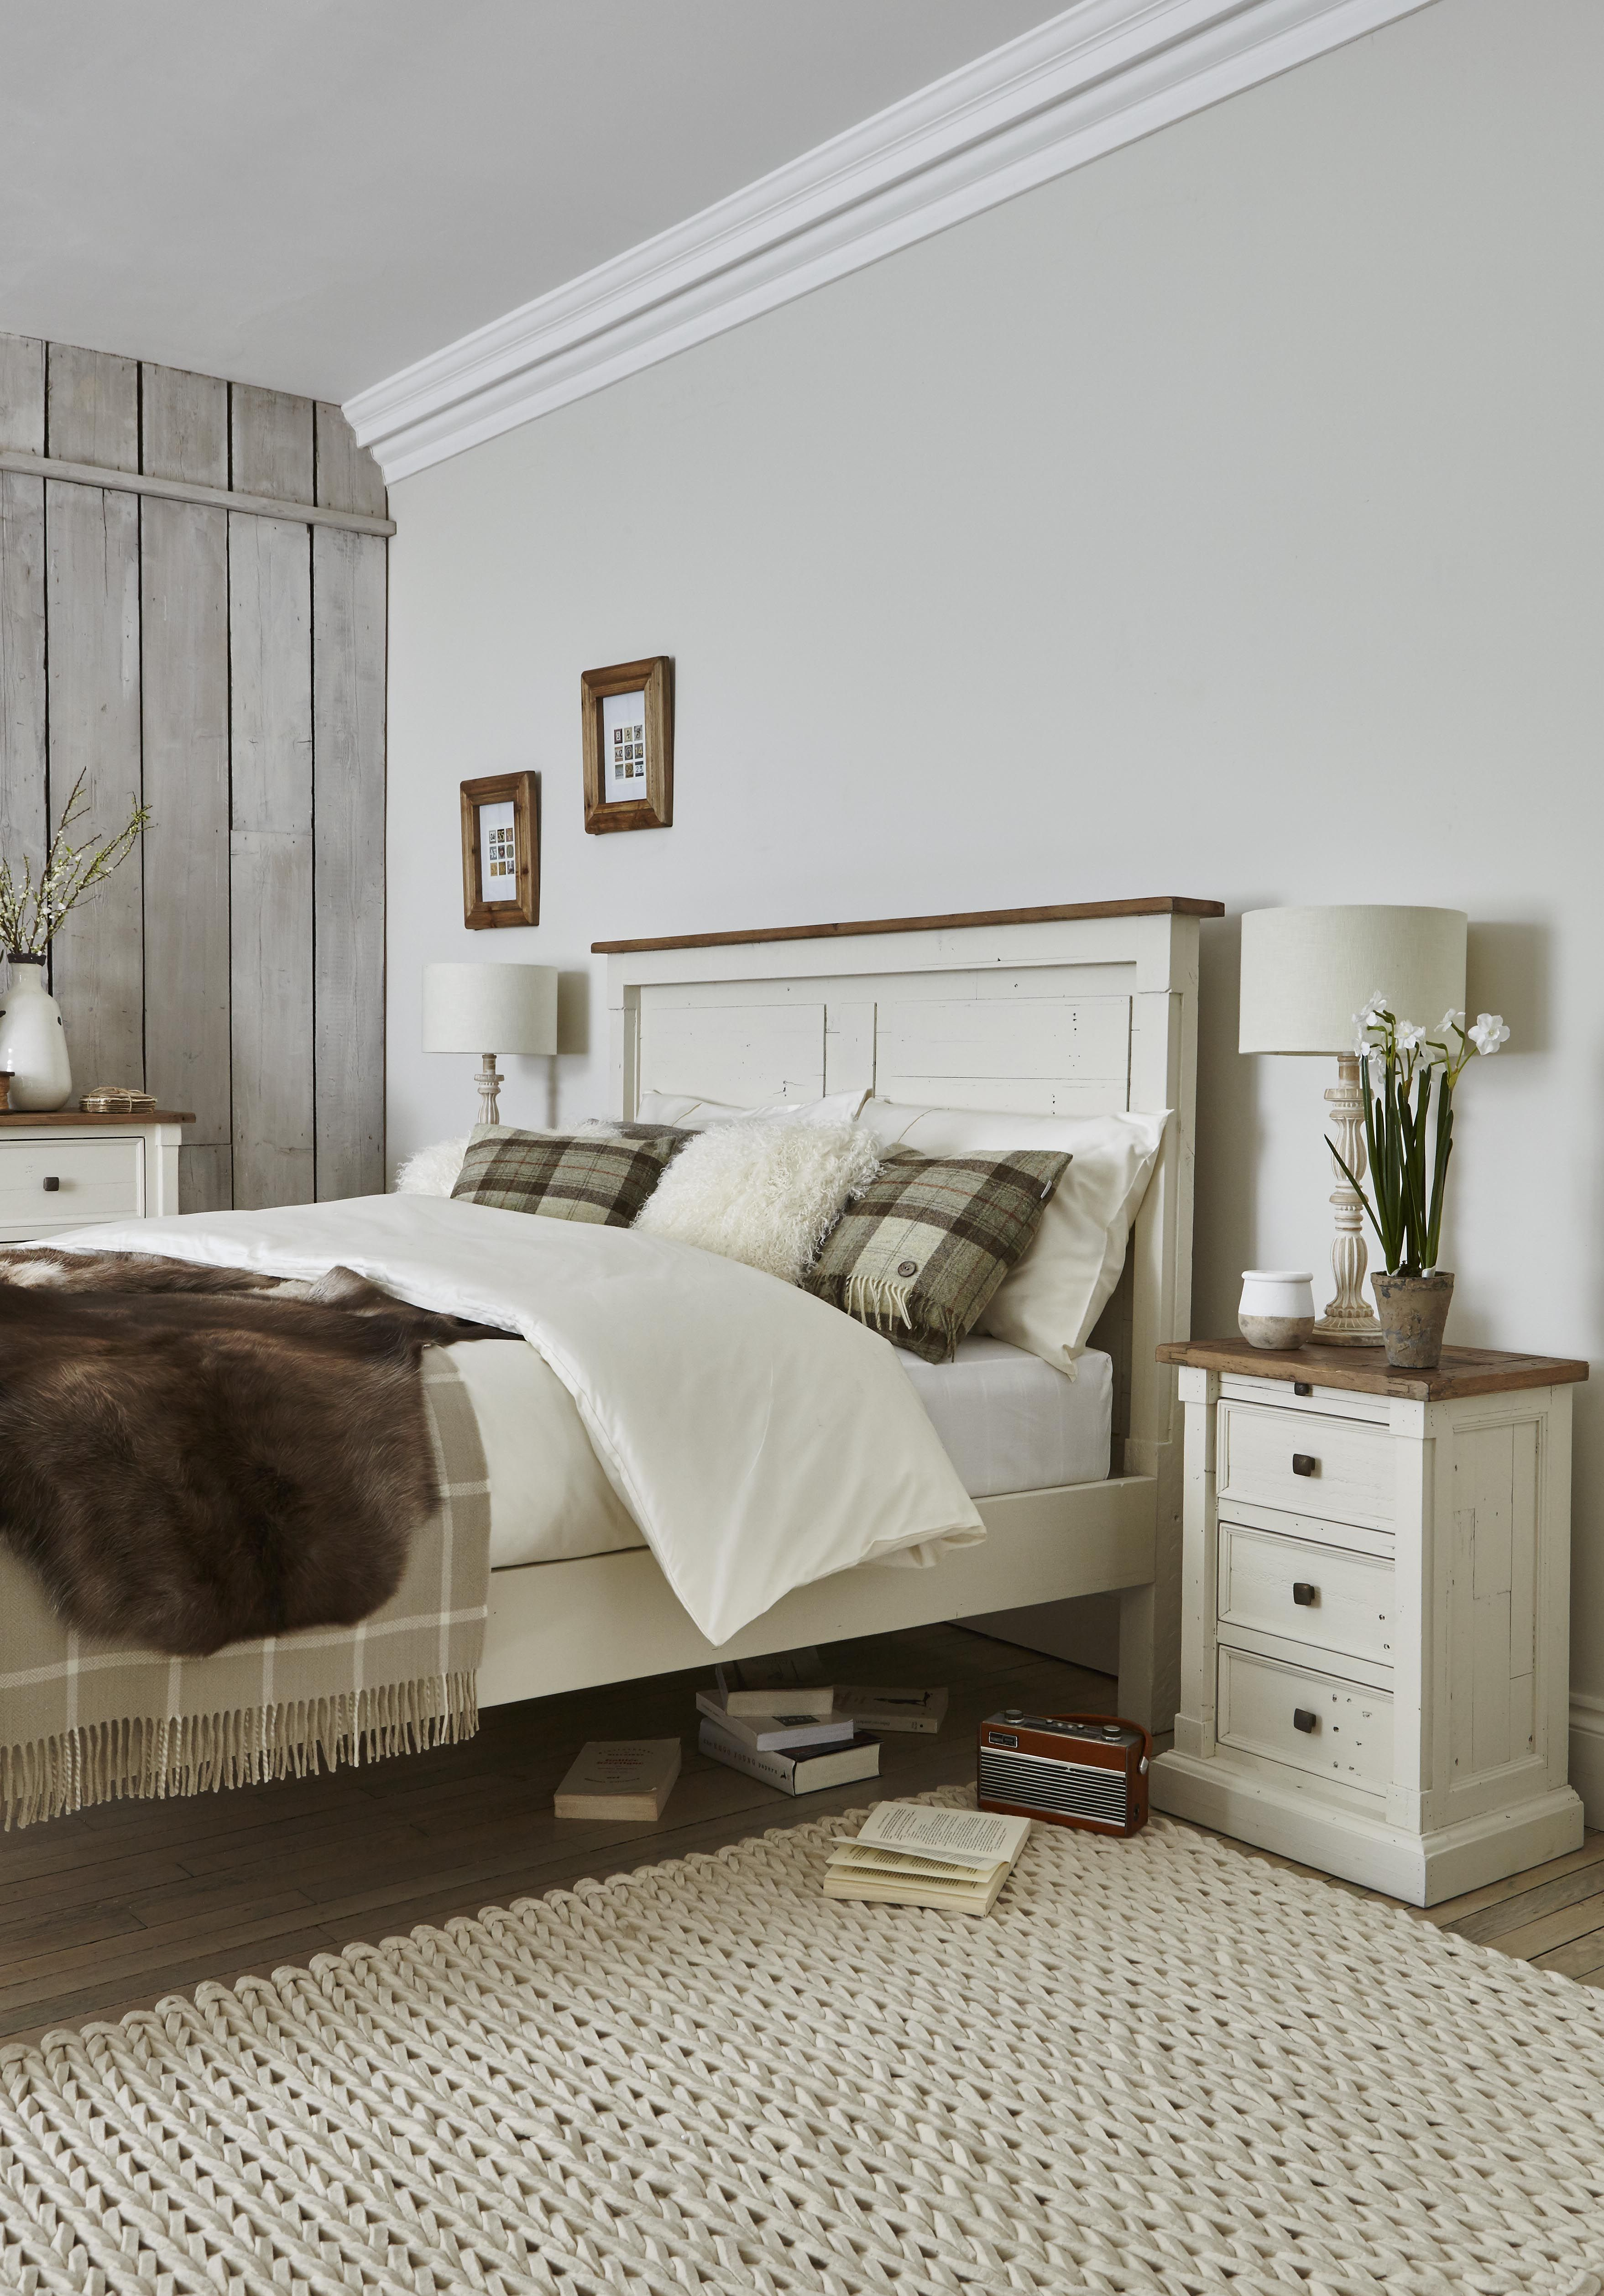 Create a calm and relaxing bedroom interior with our aurora bedroom